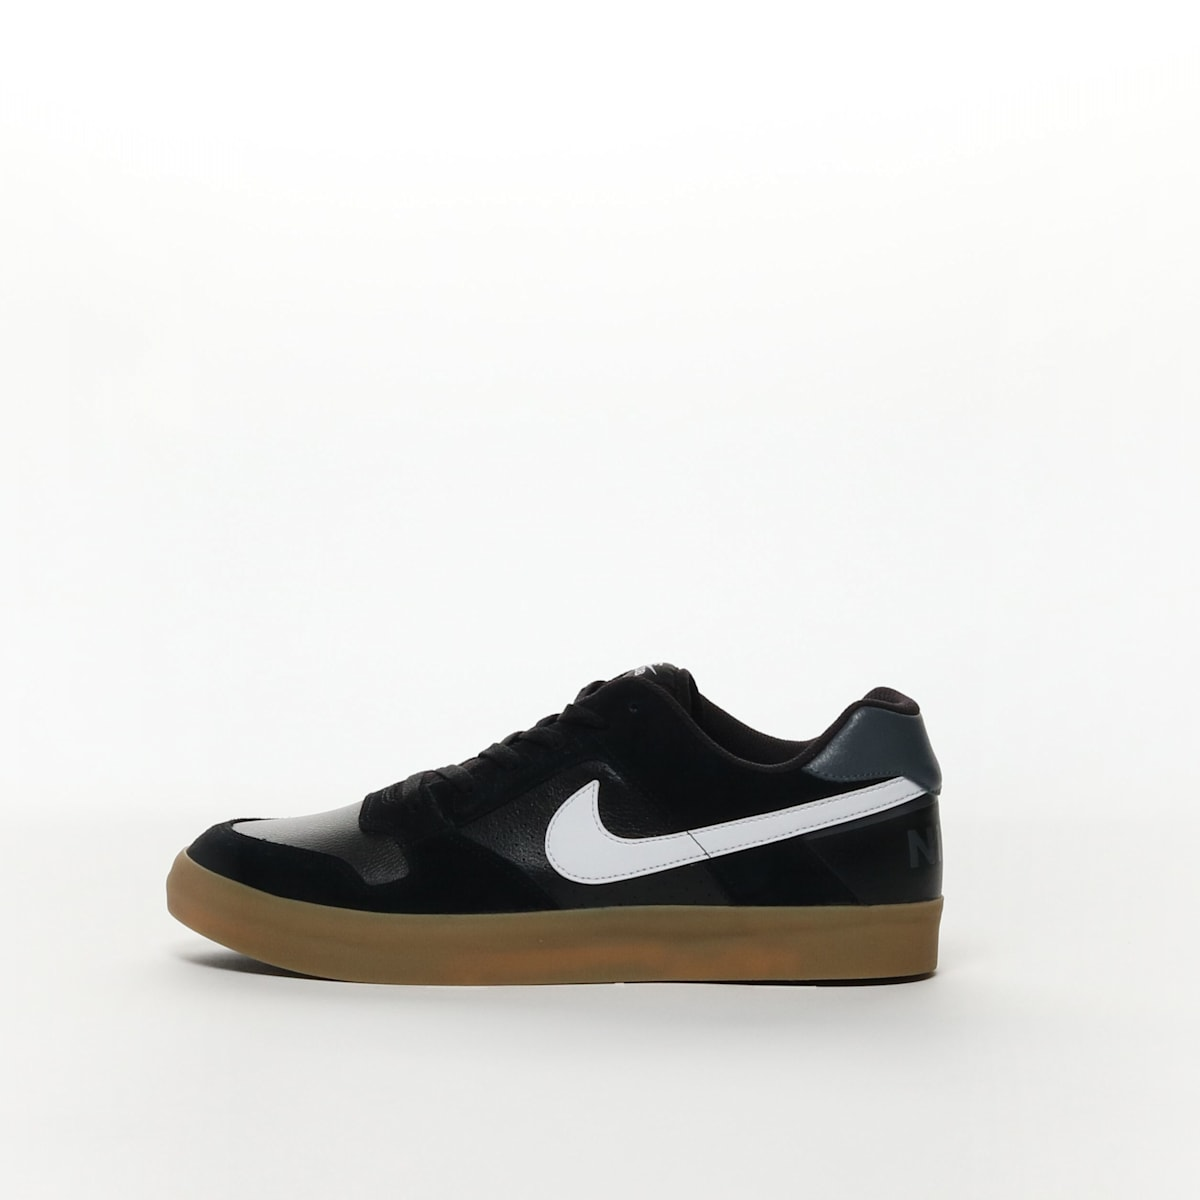 fcd426d0cc8a05 Men s Nike SB Delta Force Vulc Skateboarding Shoe - BLACK WHITE-GUM ...